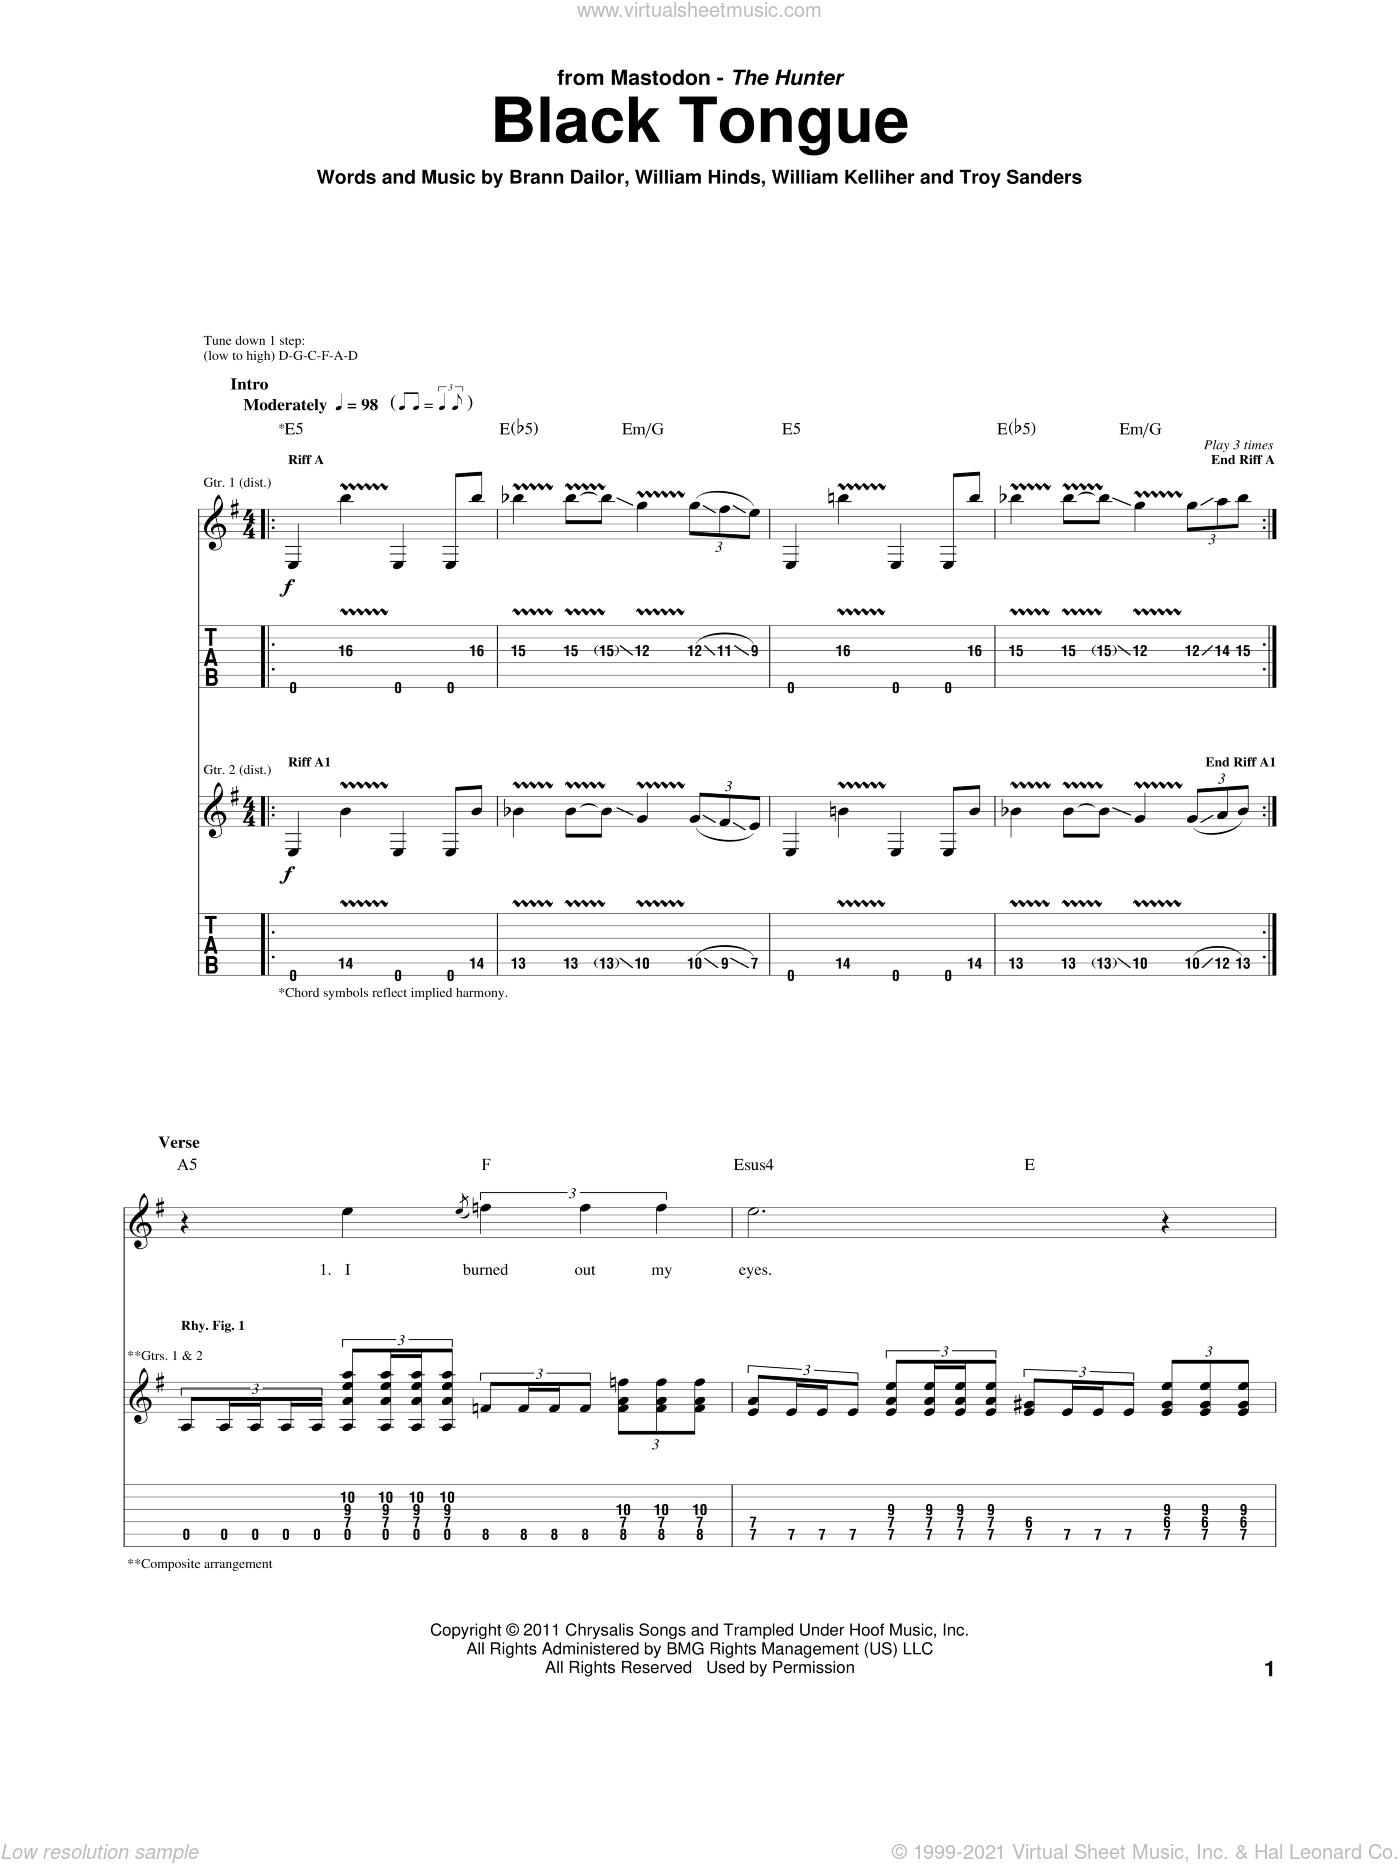 Black Tongue sheet music for guitar (tablature) by William Kelliher